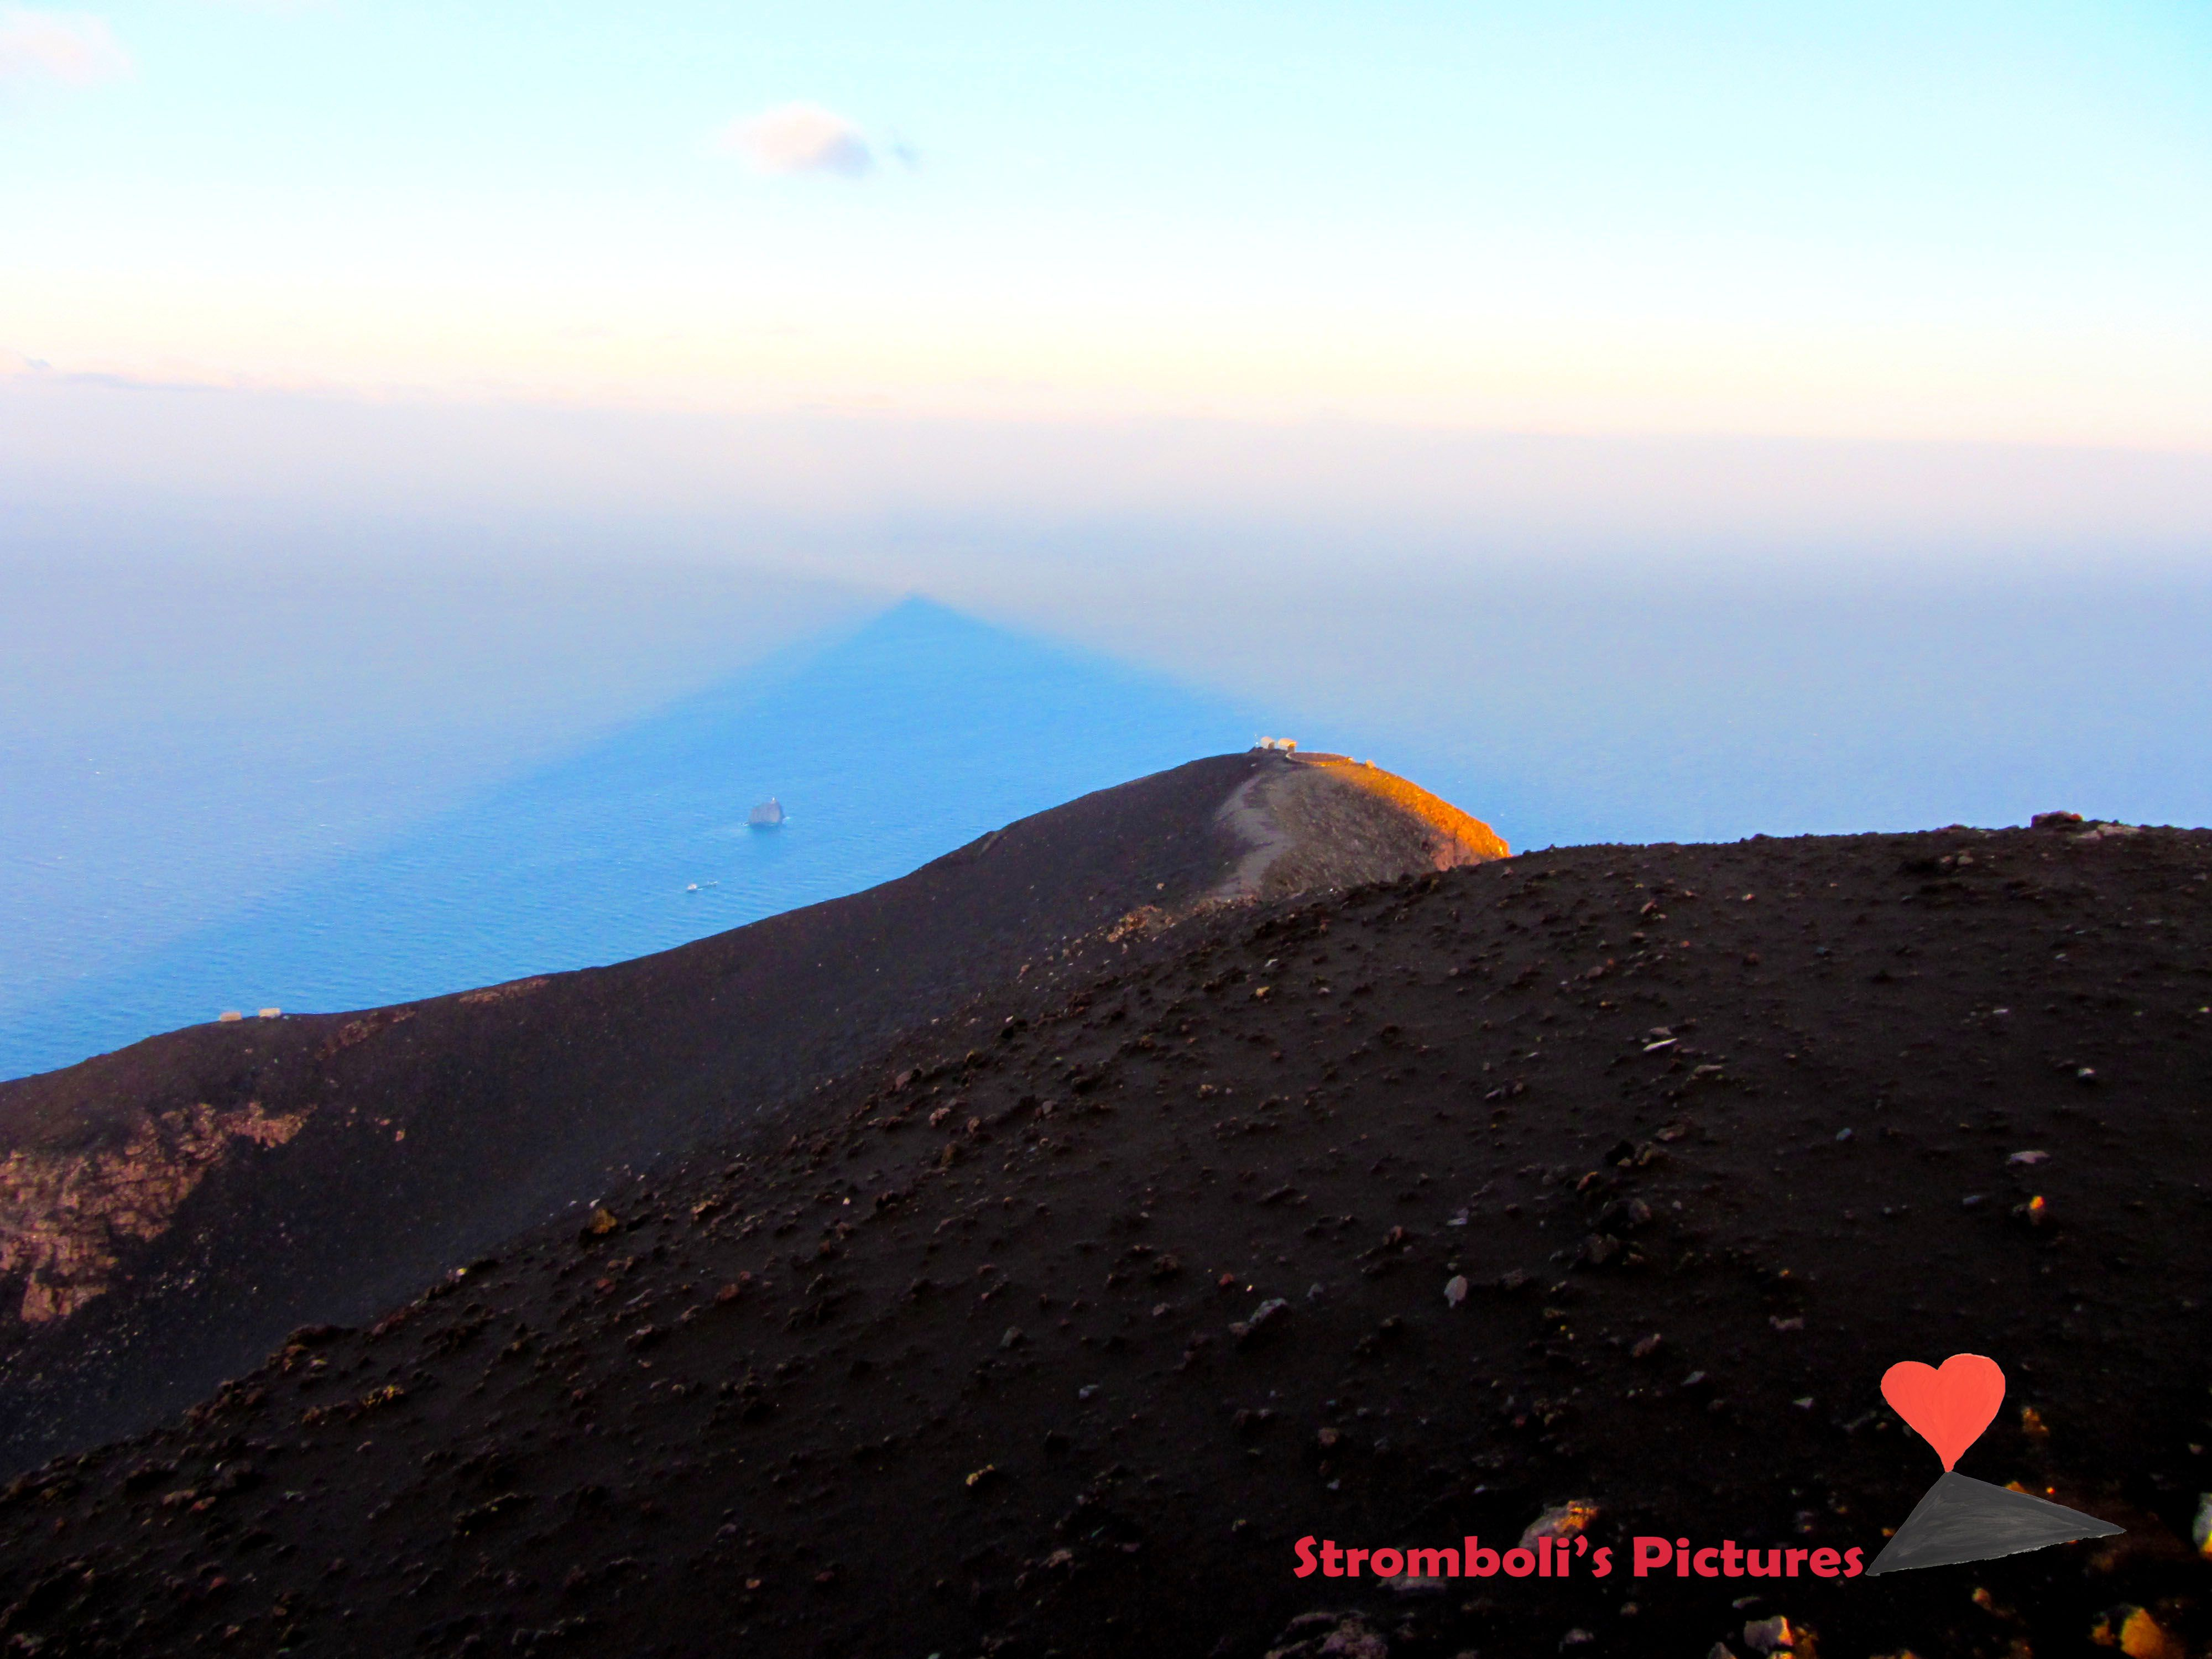 On the top of #Stromboli.